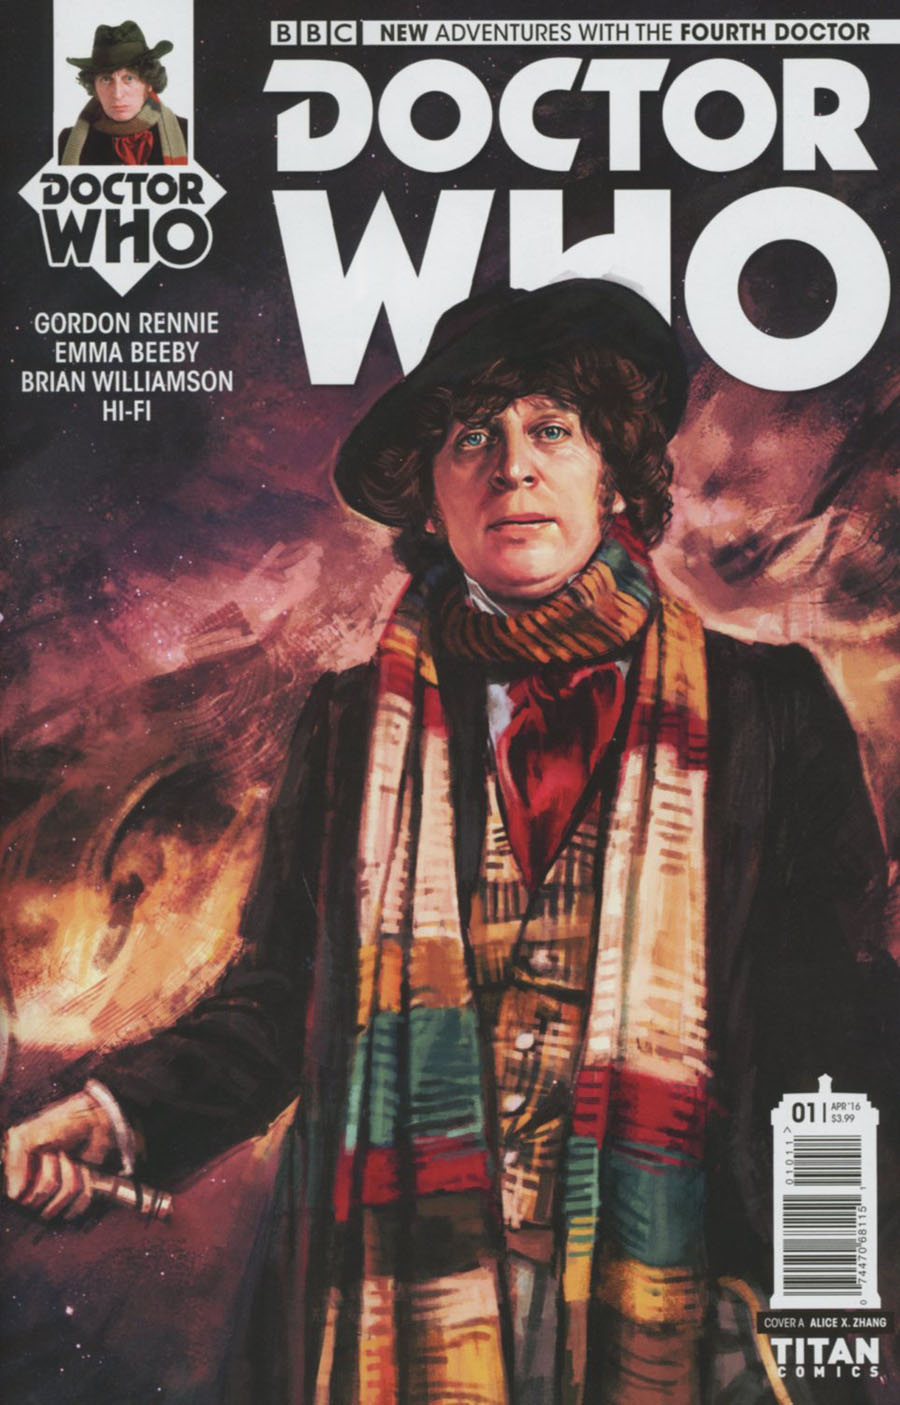 Doctor Who 4th Doctor #1 Cover A Regular Alice X Zhang Cover